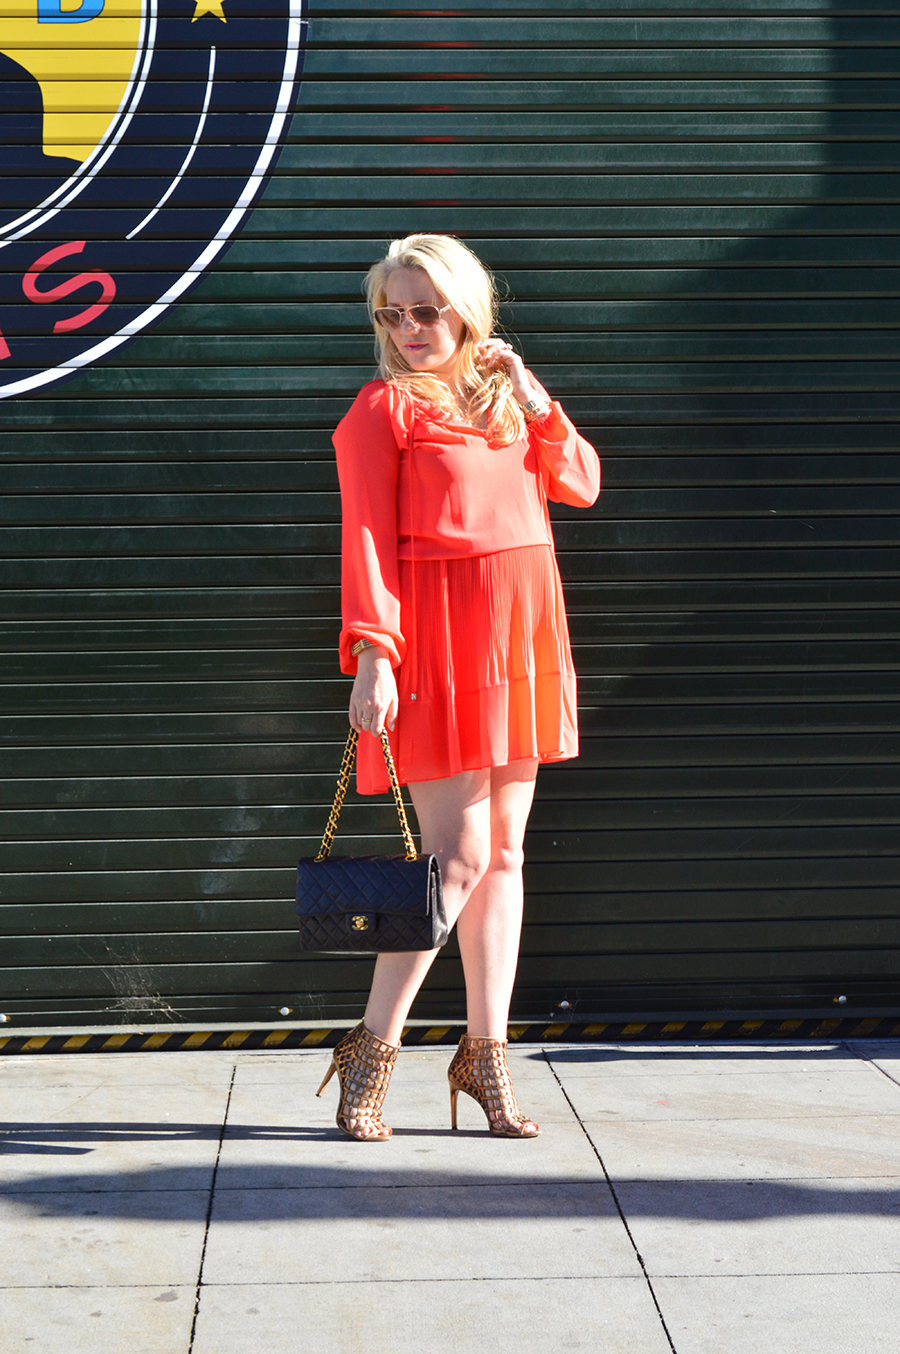 Micahel Kors Dress-Feminine Pleats-Outfit Inspiration-Maternity Style-Fashion Blogger-Have Need Want 6